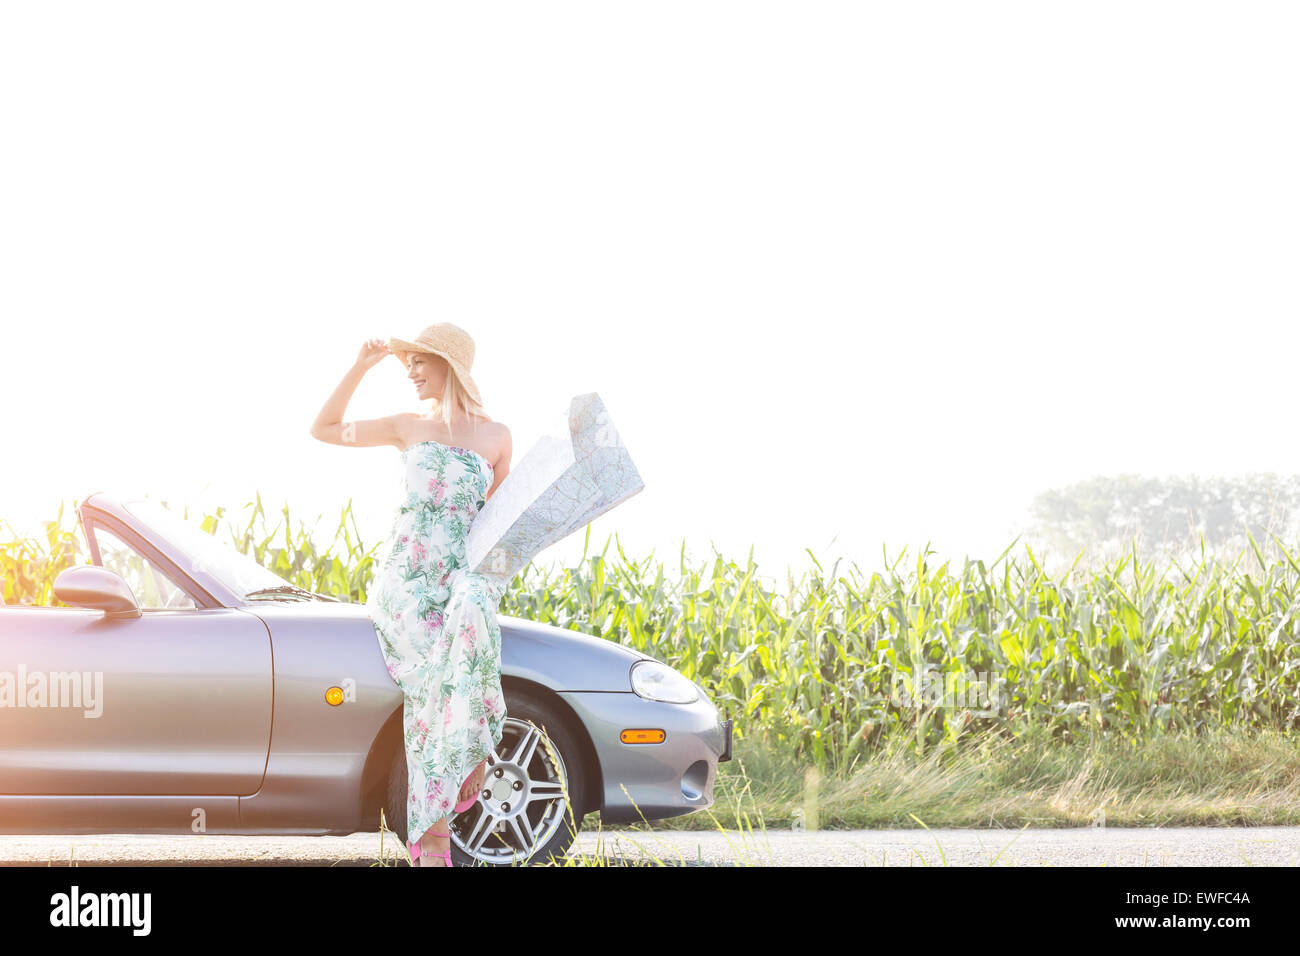 Happy woman holding map while standing by convertible on sunny day - Stock Image